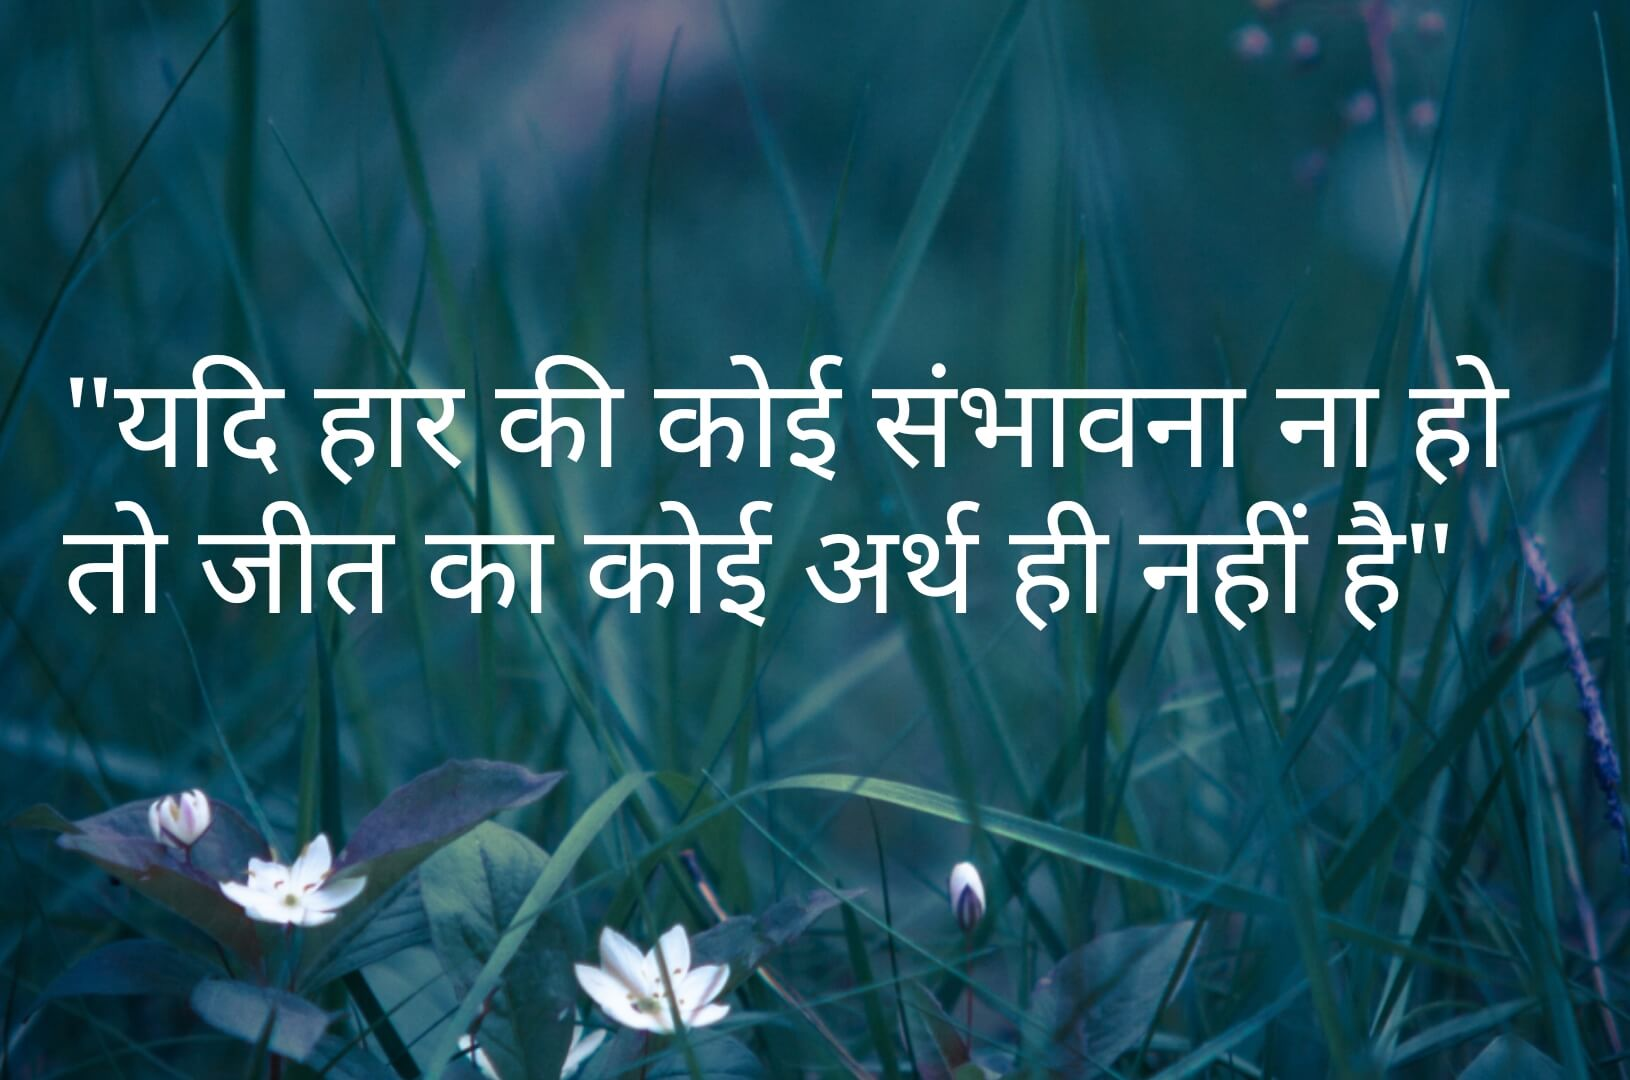 Best Motivational Shero Shayari in Hindi